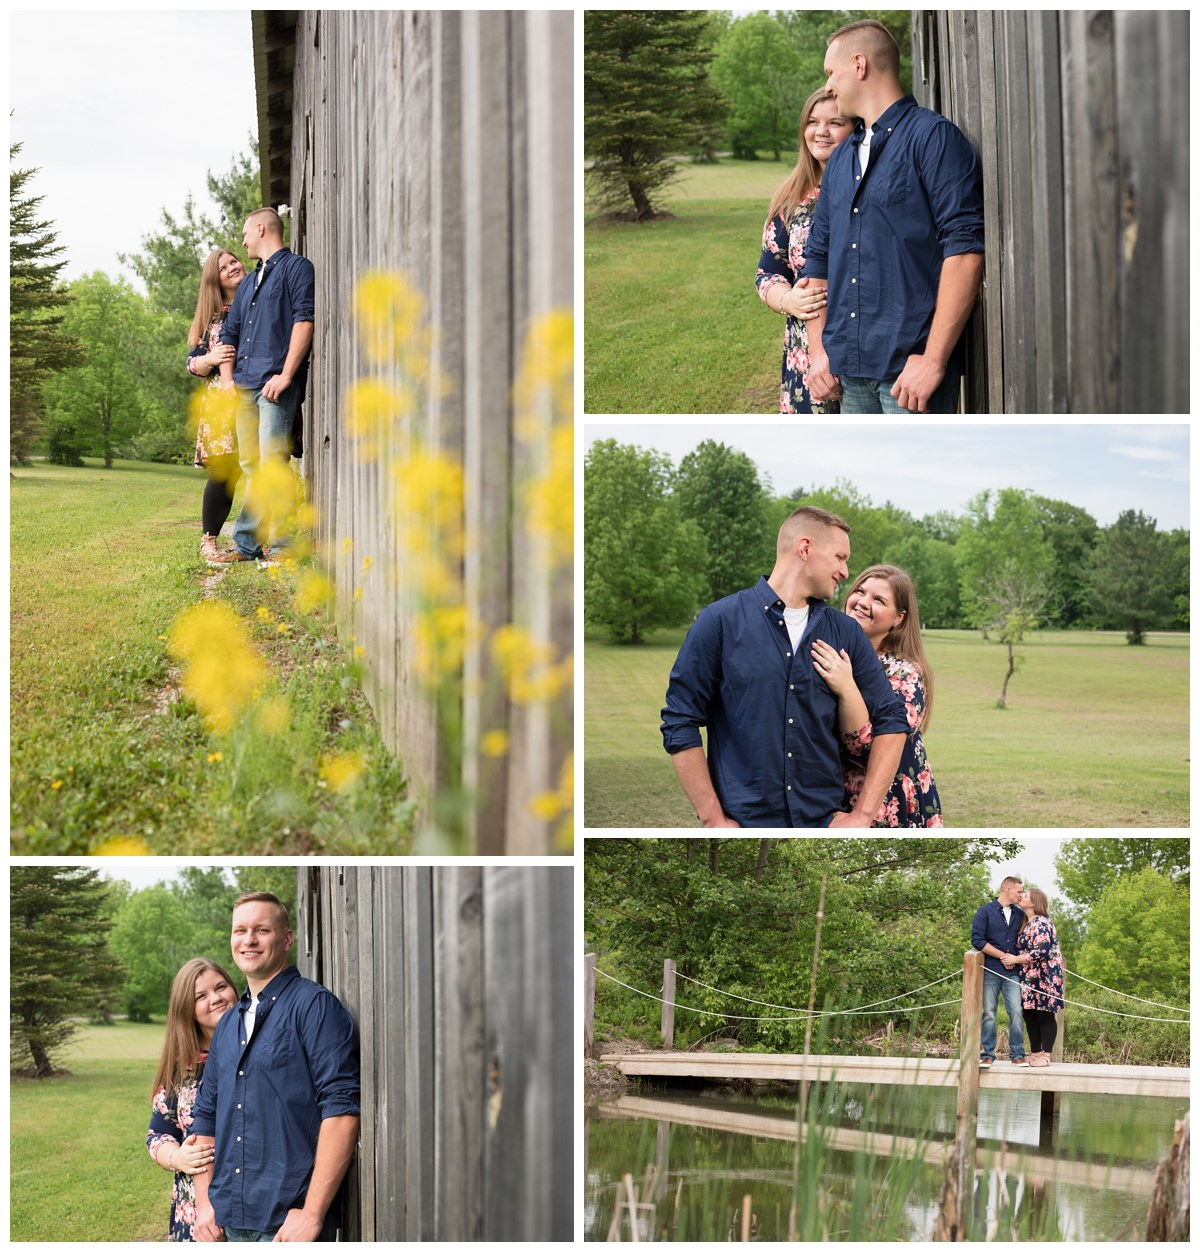 Heather Bowles Zach Sahler Glen Ridge Motorsports Park Engagement, Fultonville NY Matt McClosky Photography 518Wedding 518Photo Engagement photographer Wedding photographer Albany NY schenectady Saratoga Springs The Knot Wedding Wire Award Winning Photographer